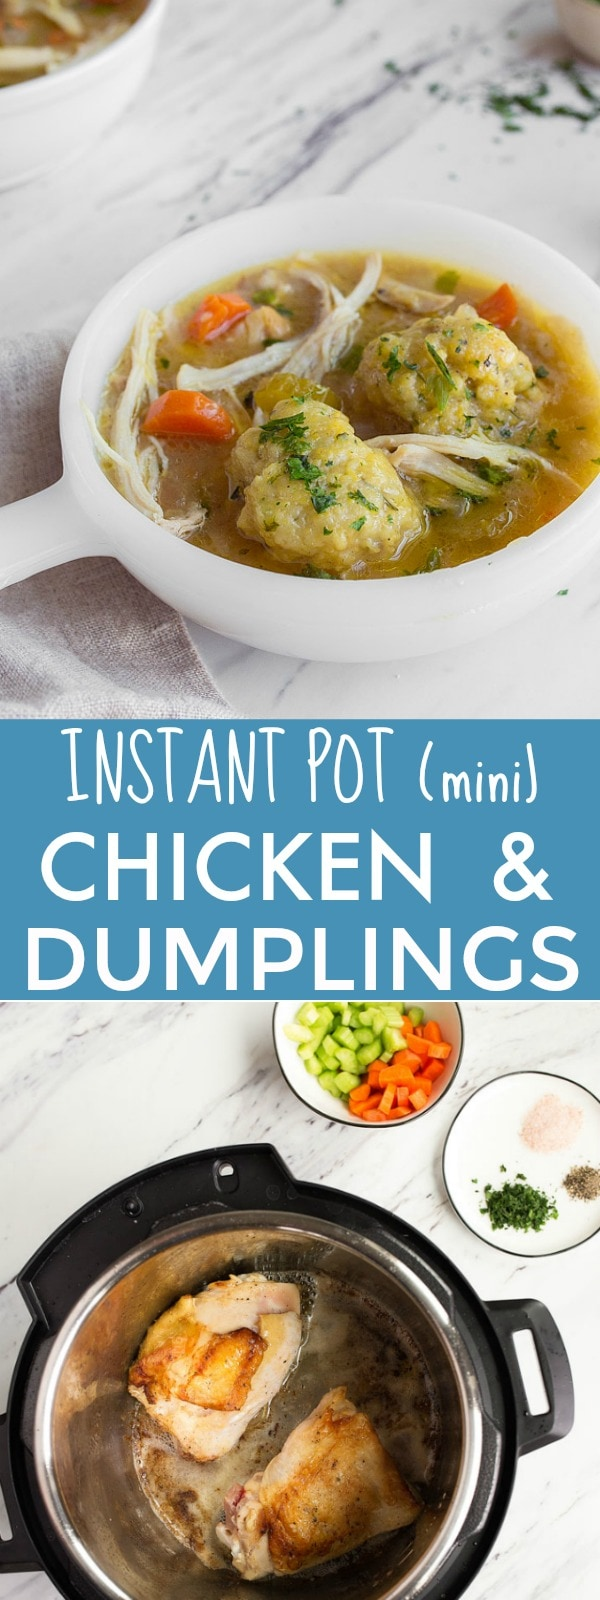 Instant Pot Chicken and Dumplings for Two in the Instant Pot Mini. Instant Pot Chicken recipes. Instant Pot Mini 3 quart recipes for two.